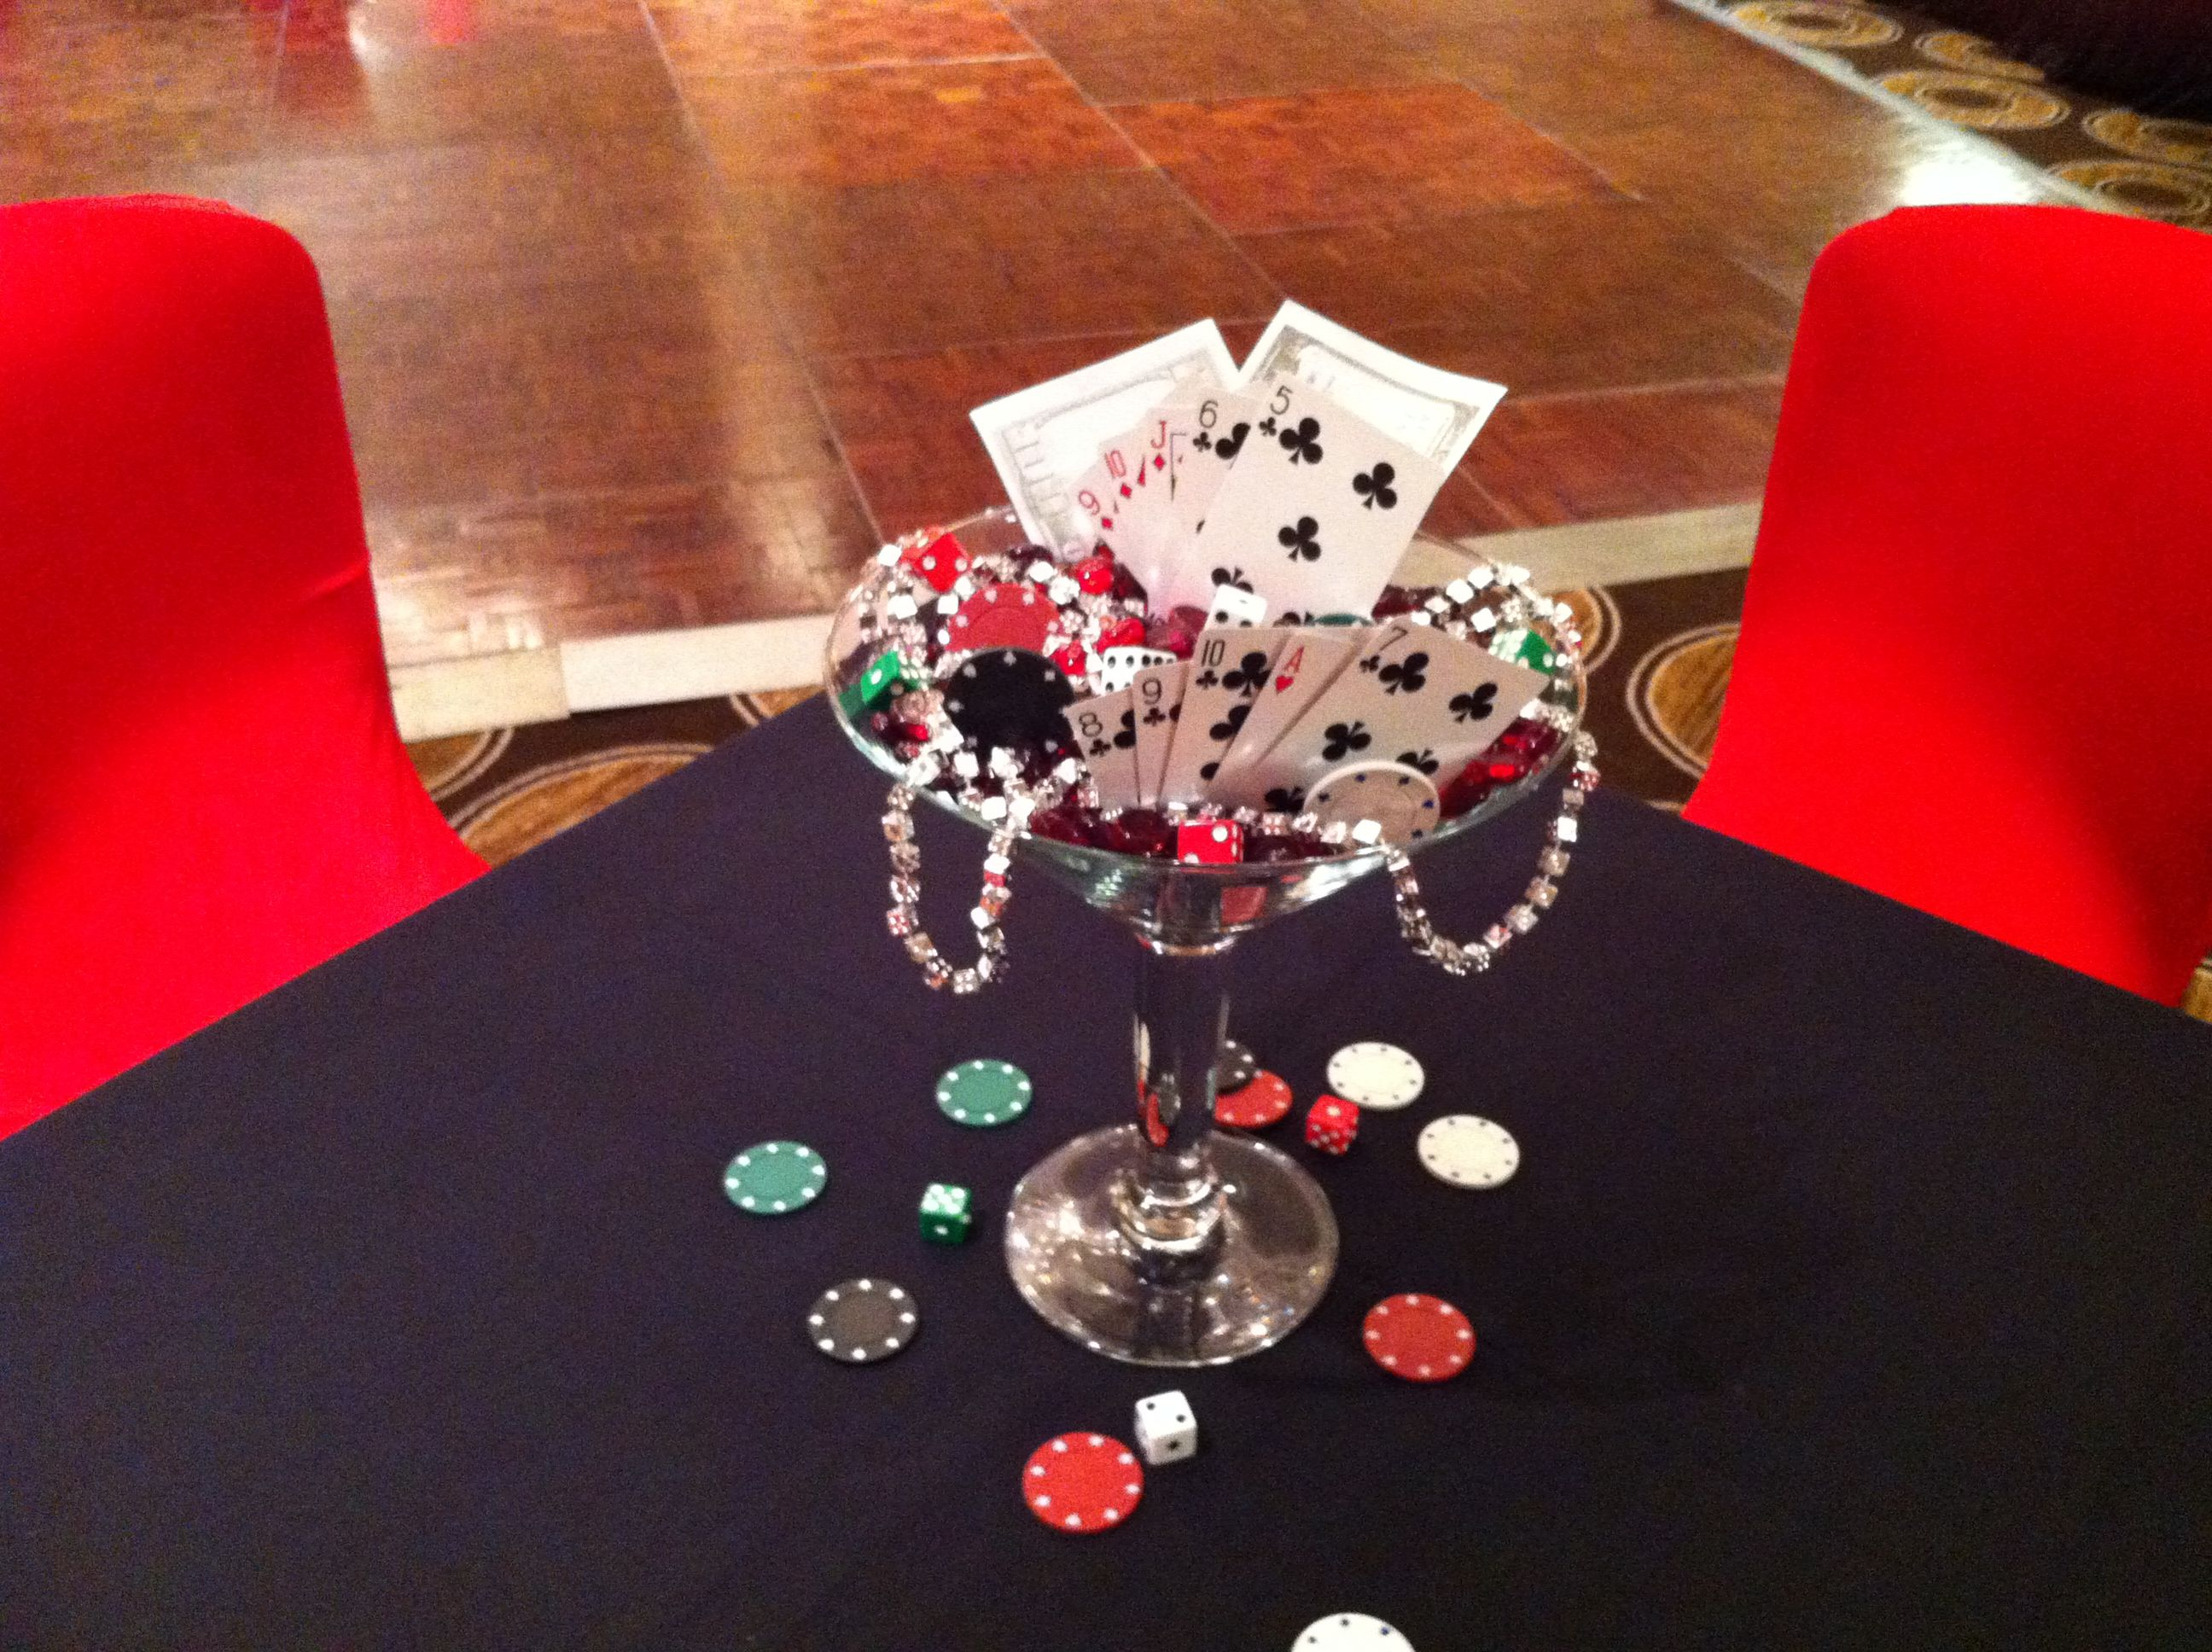 Glamorous Martini Glass Centerpiece For Casino Theme Party | Casino Theme regarding Casino Theme Party Decorations